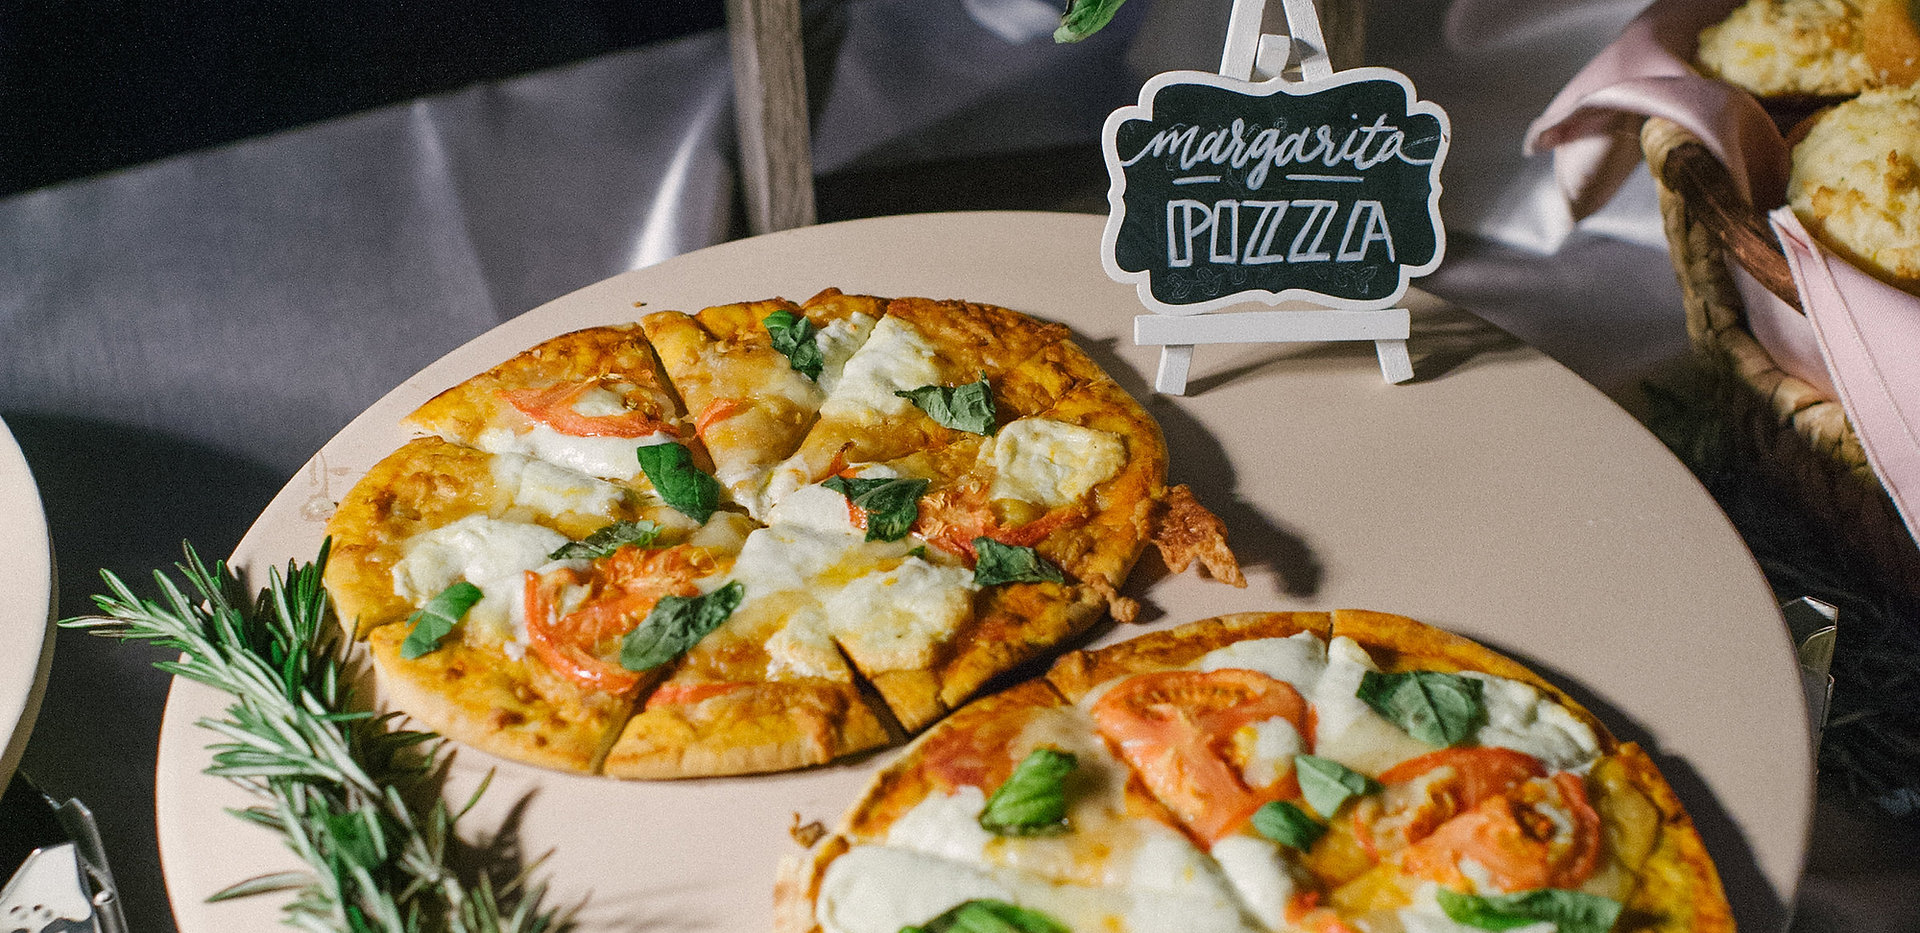 Treat your guests to a pizza station